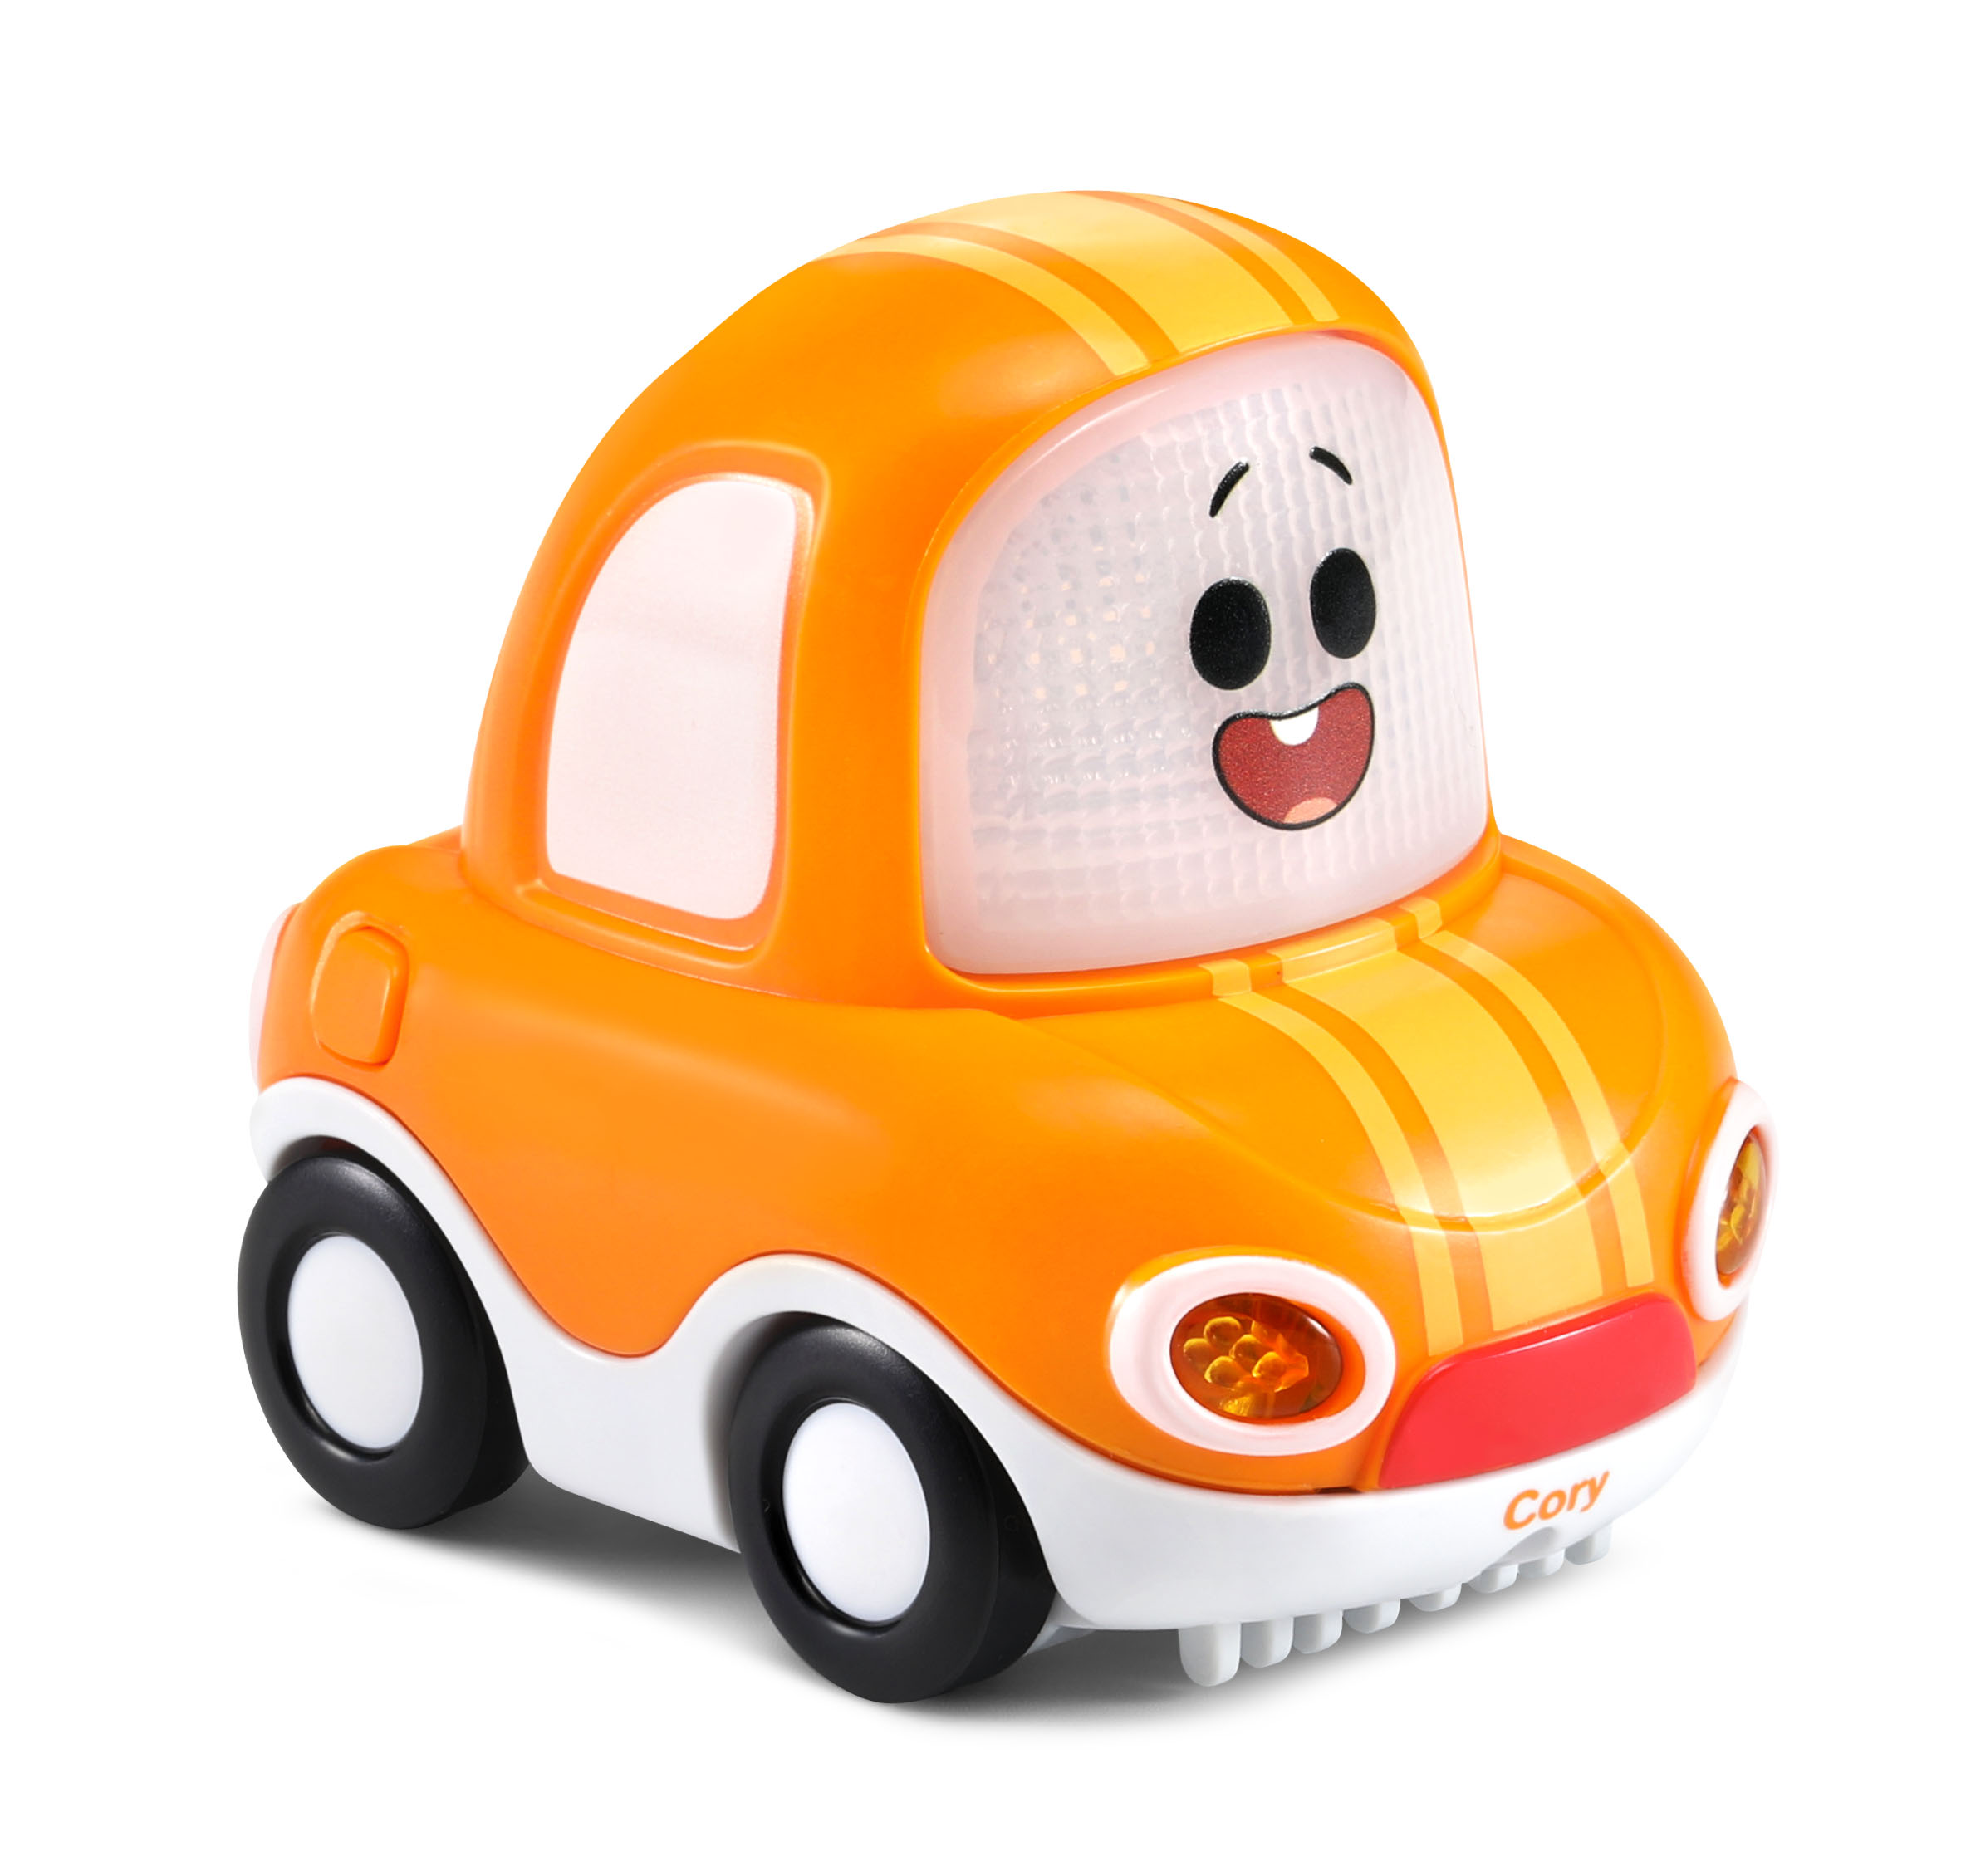 Vtech toot-toot cory carson® smartpoint™ Frannie educational car toy for